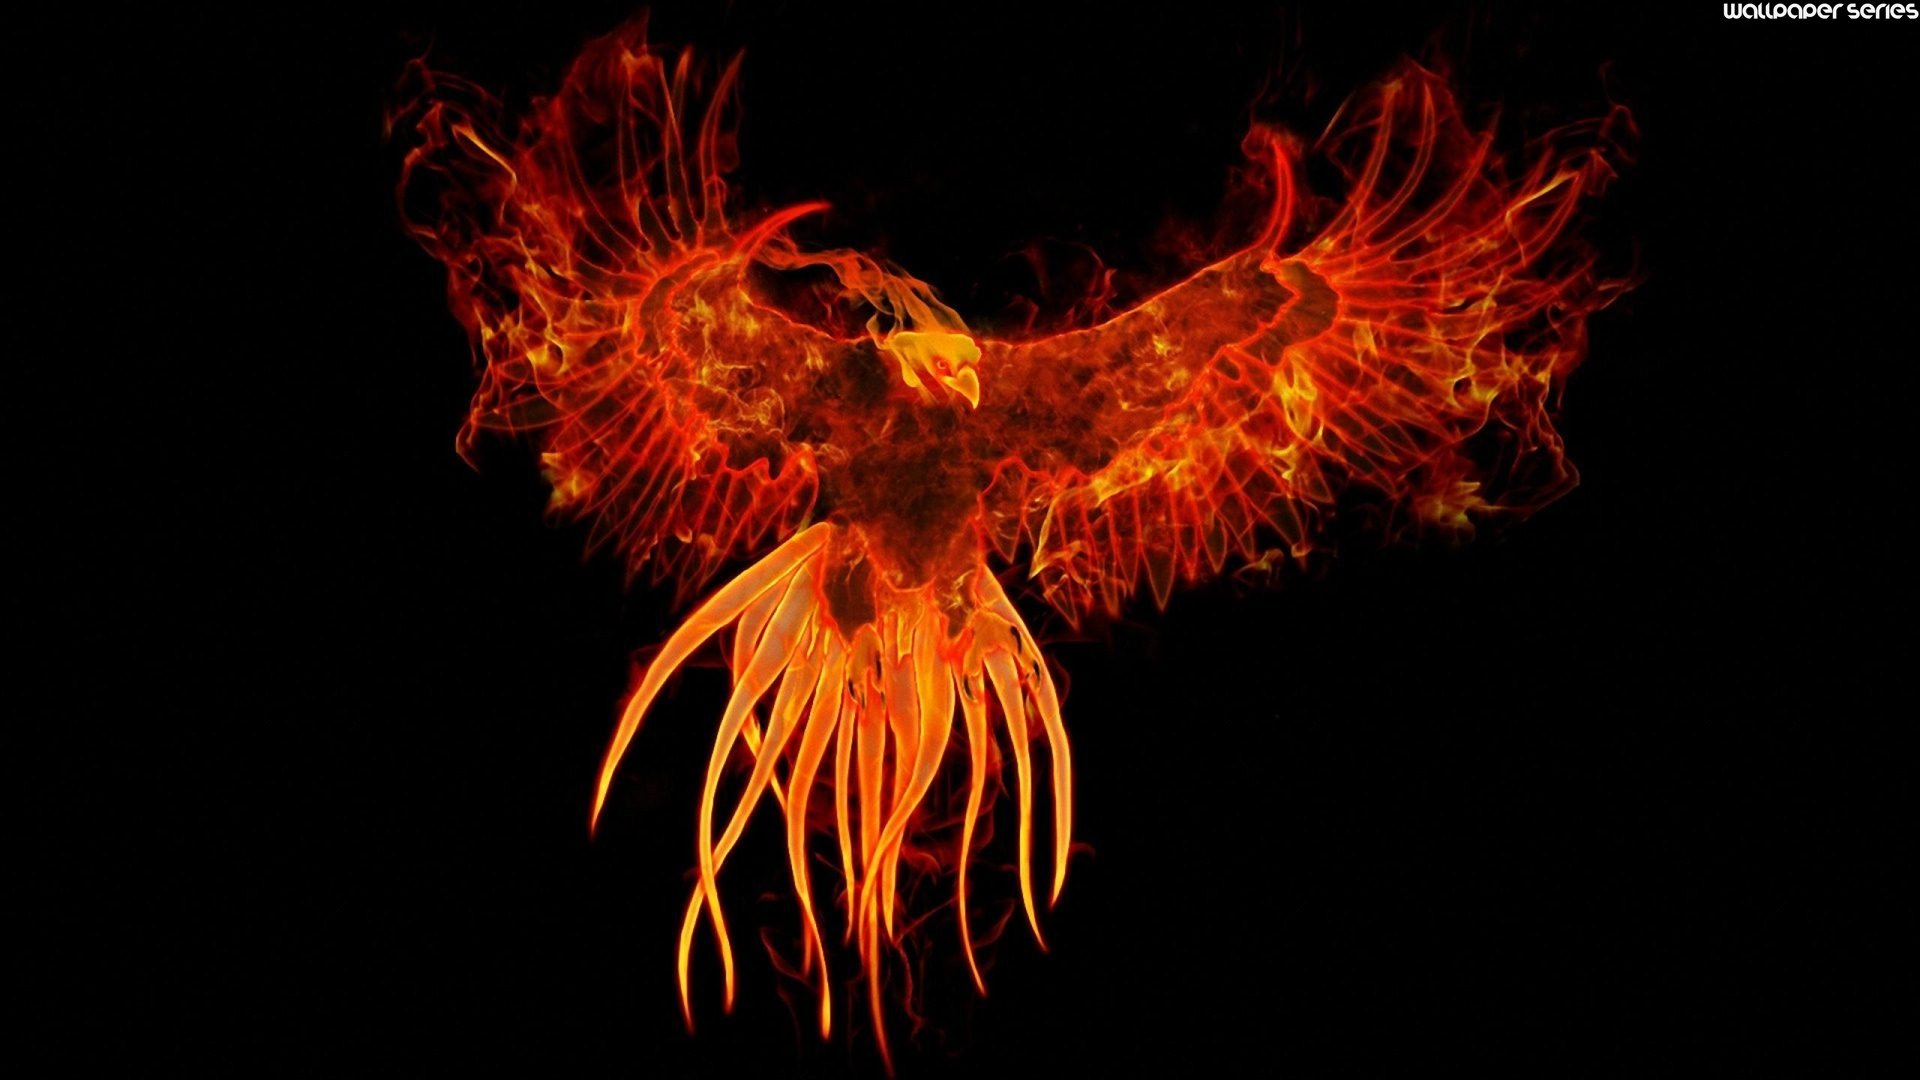 Phoenix Bird 22 Widescreen Wallpaper Wallpaper 1920x1080